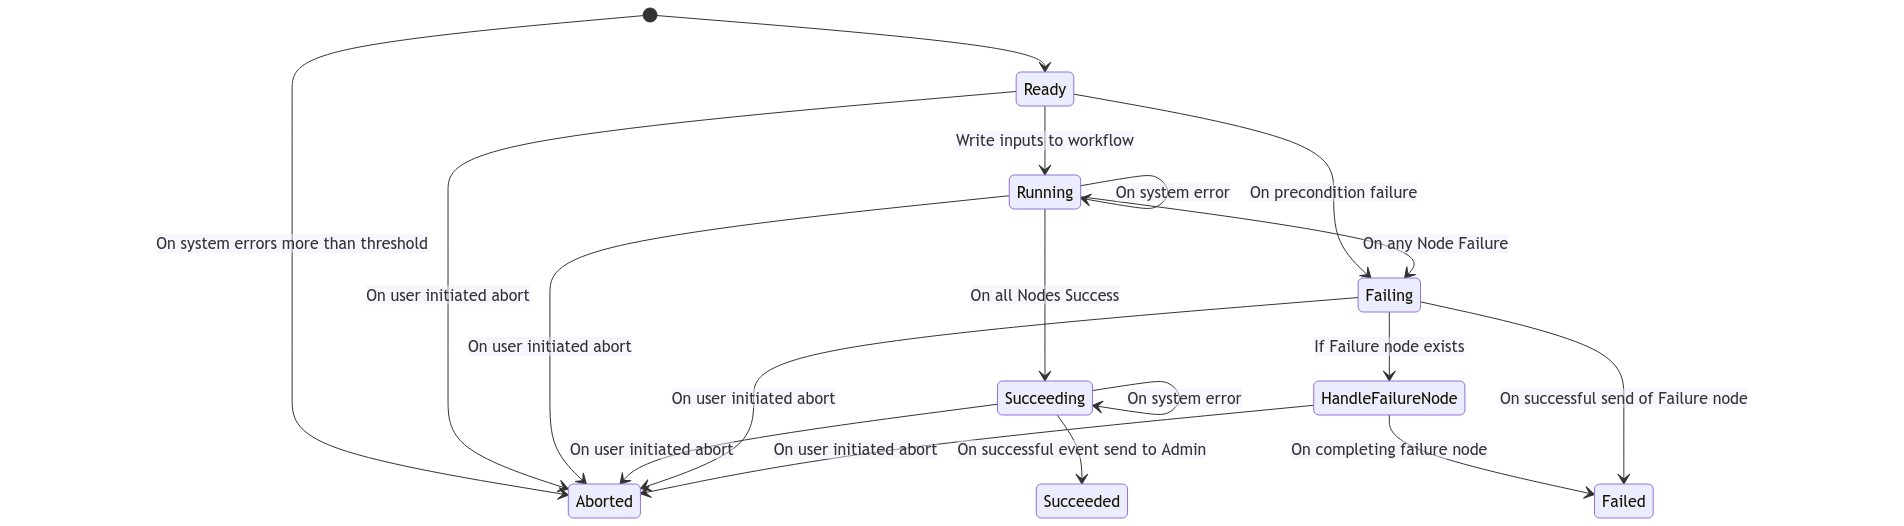 The State diagram above illustrates the various states through which a workflow transitions. This is the core finite state machine (FSM) of a Workflow.